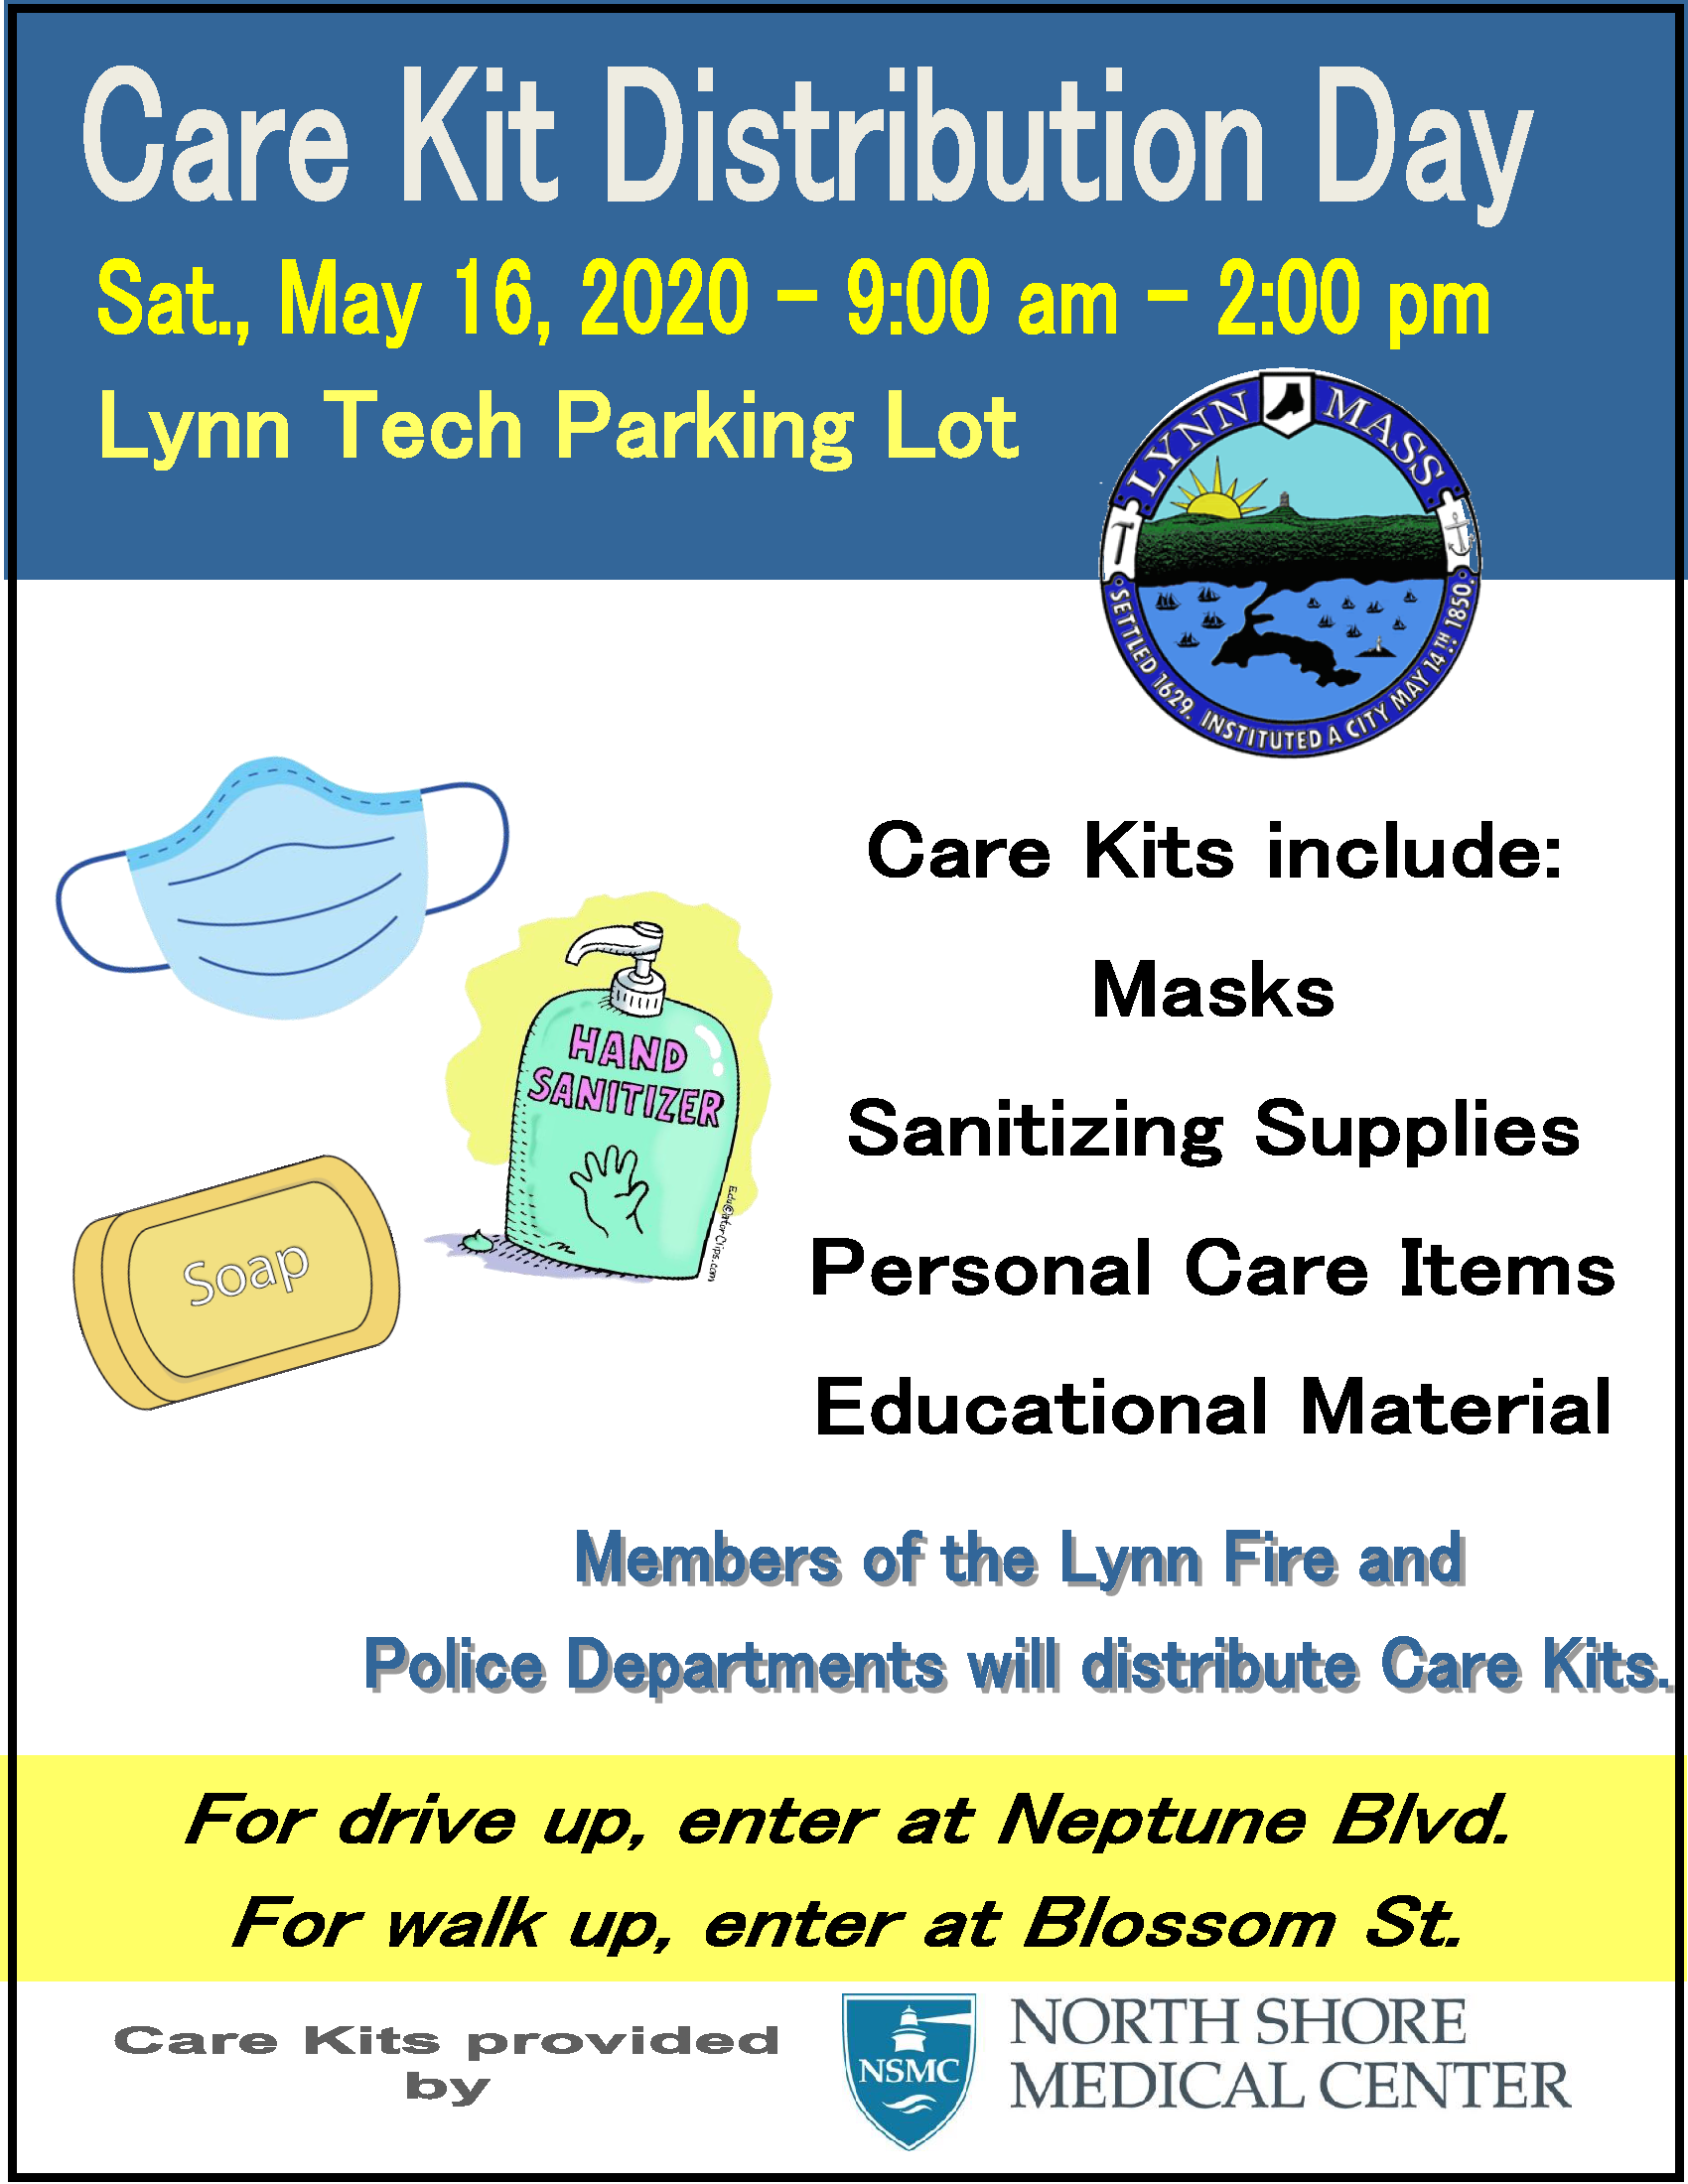 5.16.20 Care Kit Distribution Day Flyer.png